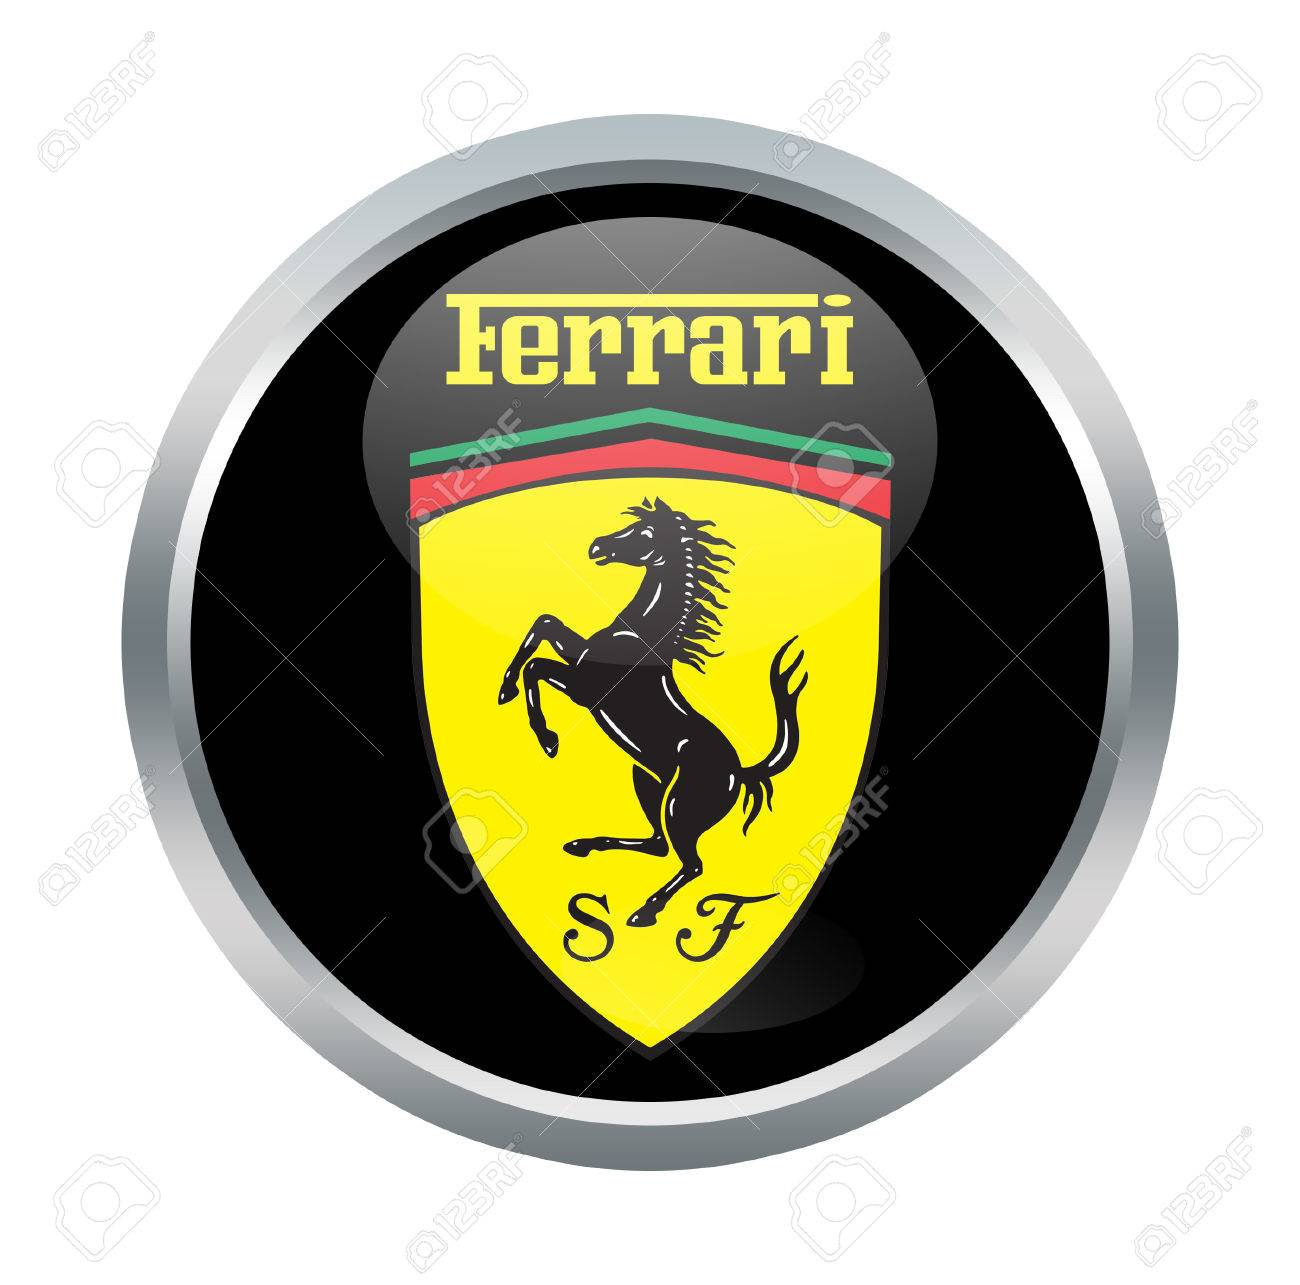 Ferrari sign on white stock photo picture and royalty free image ferrari sign on white stock photo 69200275 buycottarizona Choice Image